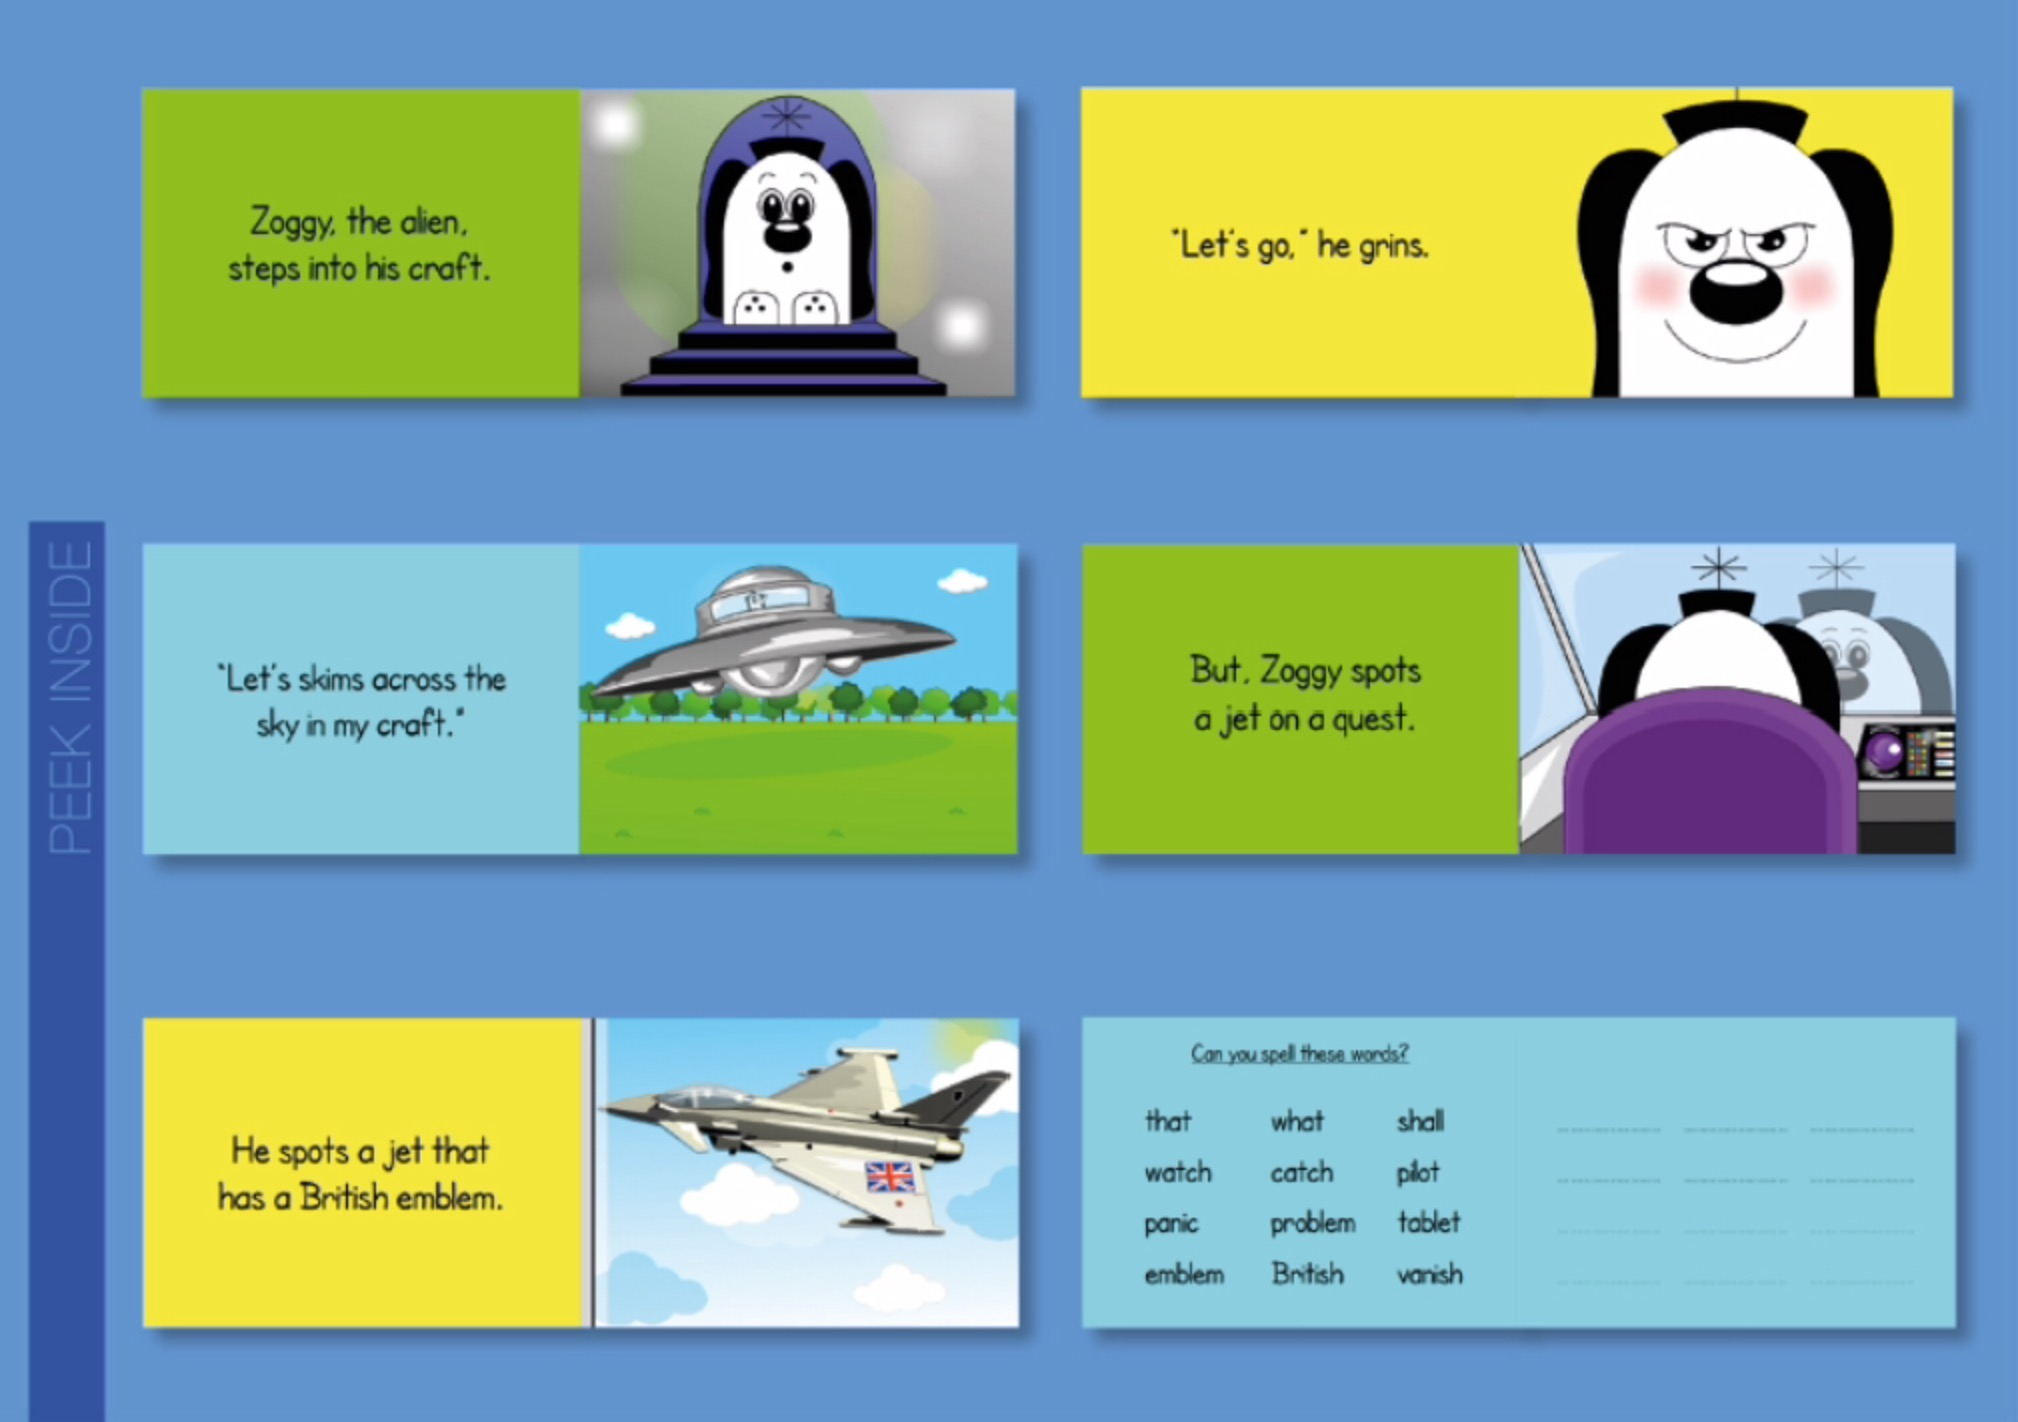 Initial Consonant Blends & Consonant Digraphs (Zoggy Can Fly In His Craft)